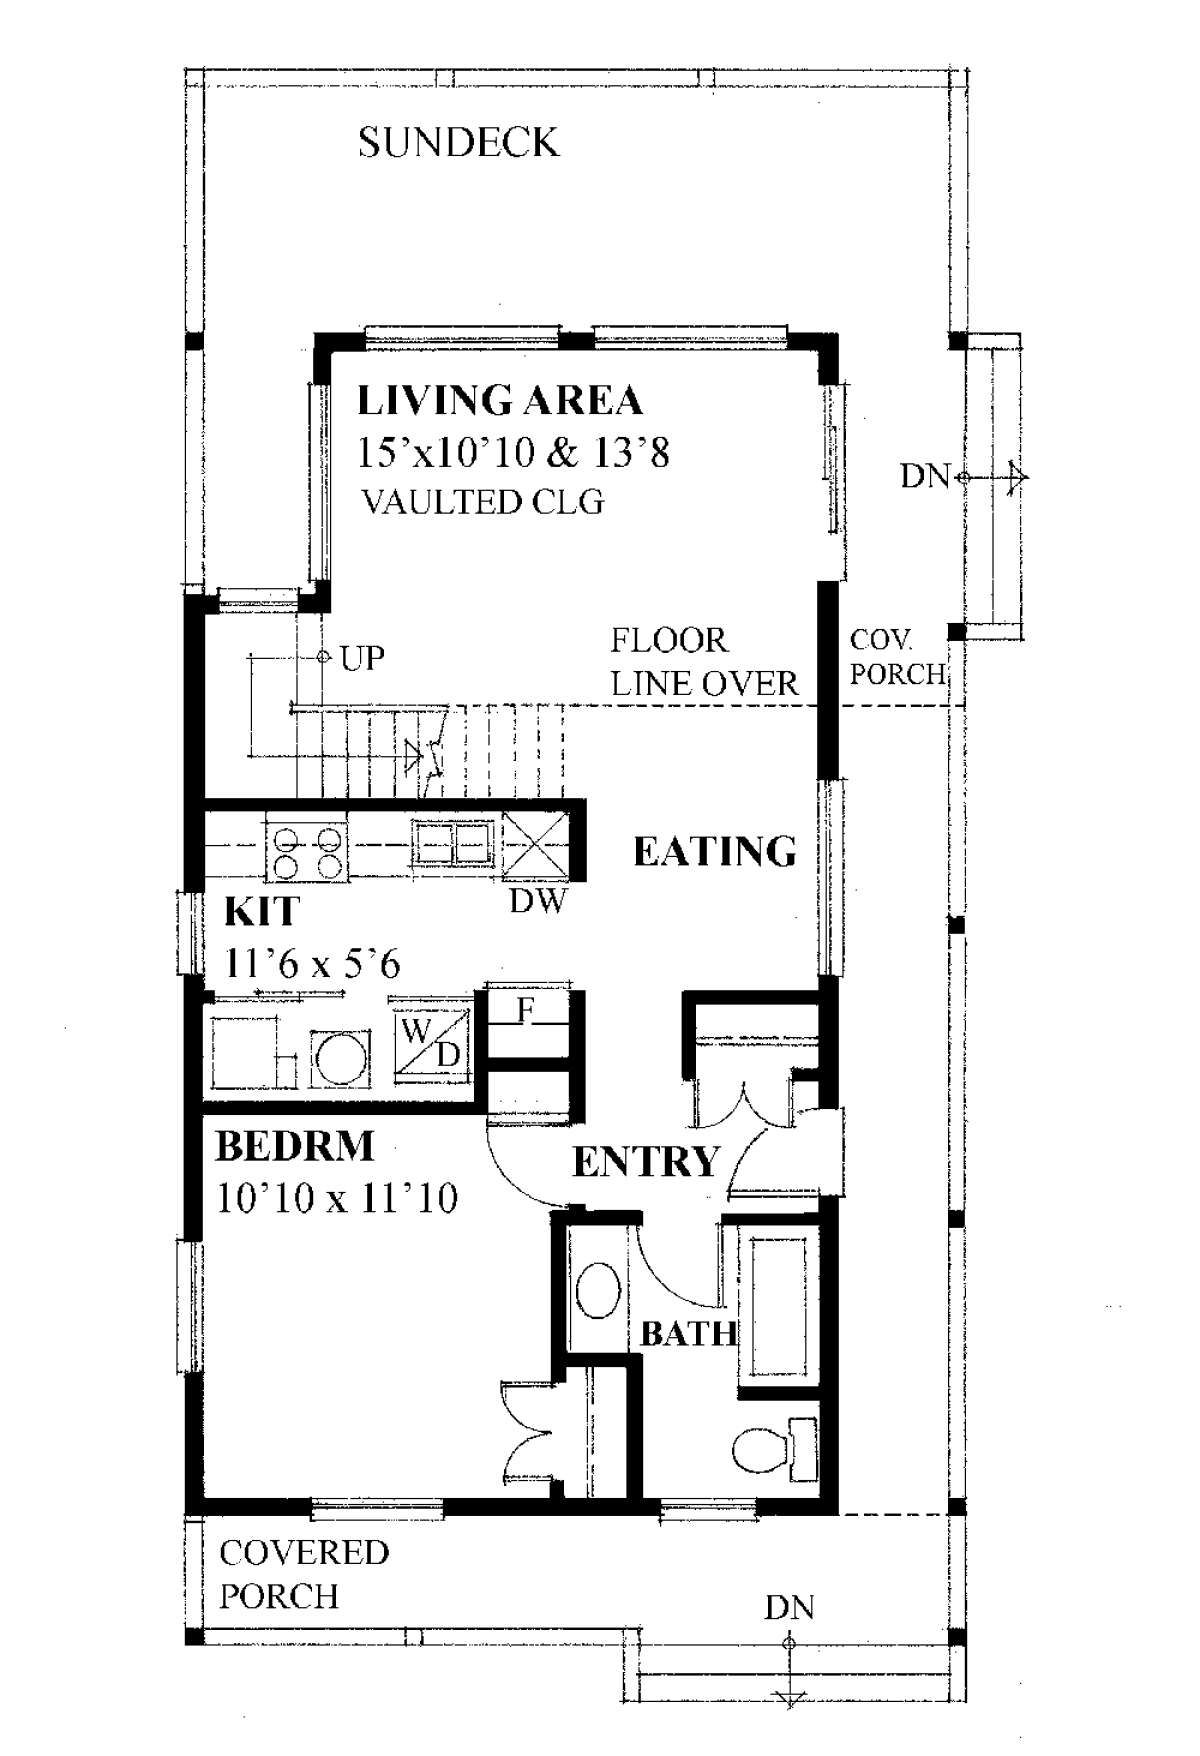 House Plan 4177 00004 A Frame Plan 1 062 Square Feet 1 Bedroom 1 Bathroom A Frame Floor Plans How To Plan House Plans